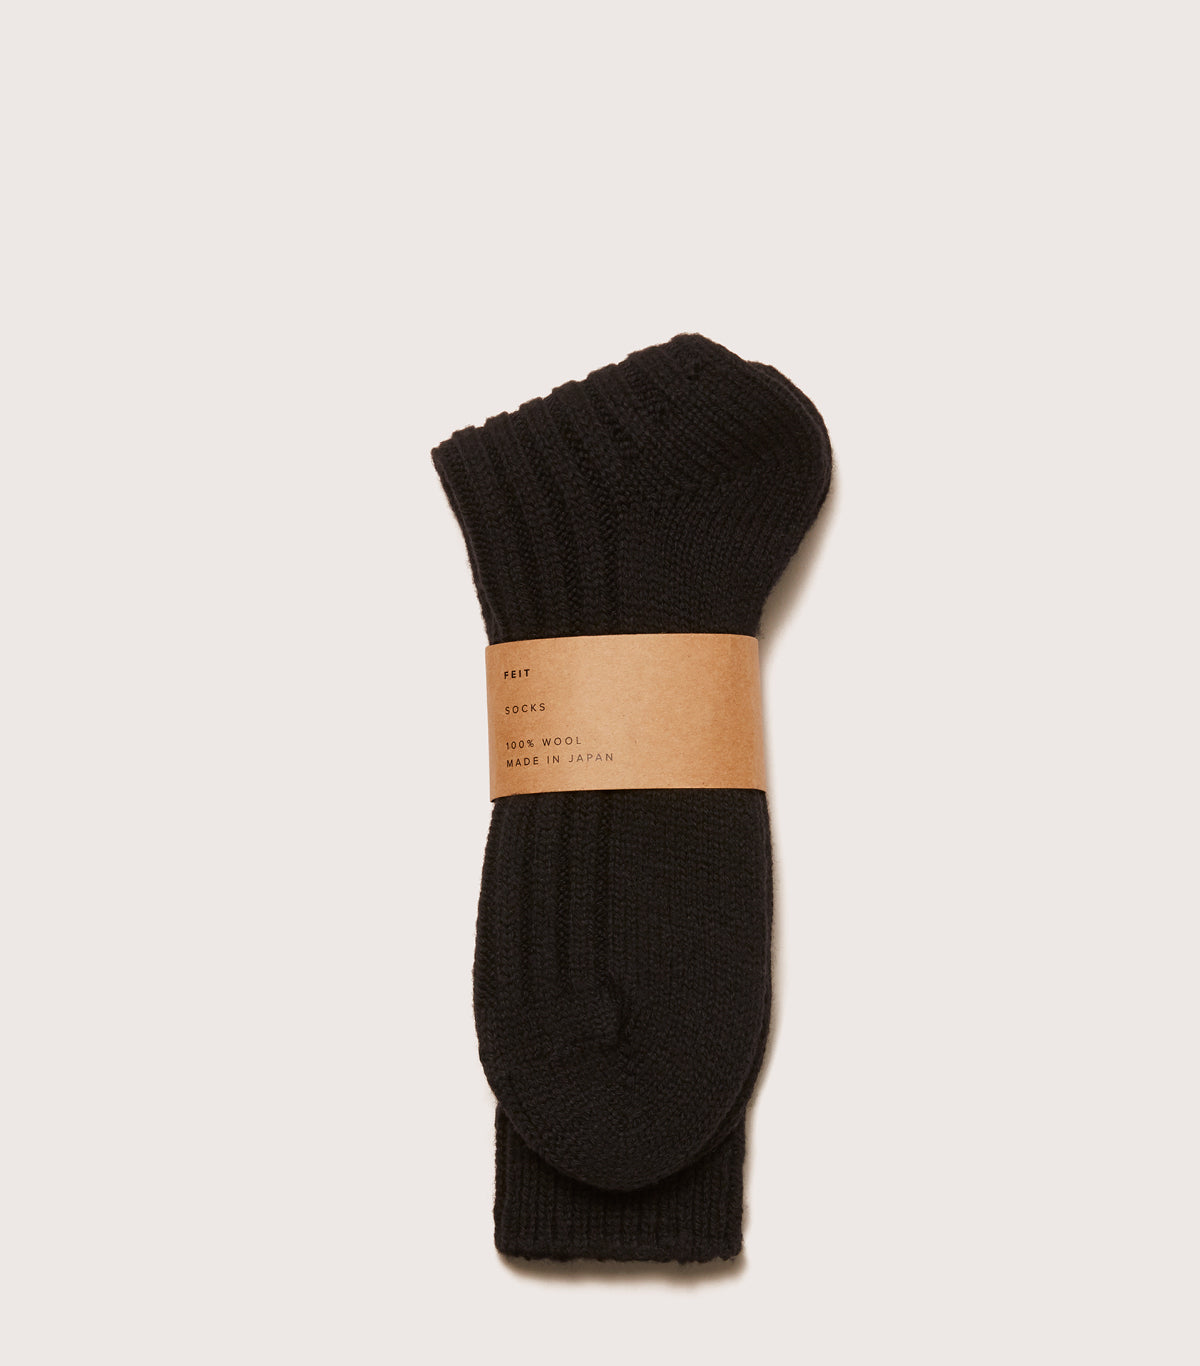 Wool Socks - AUSOCKLT_BLK